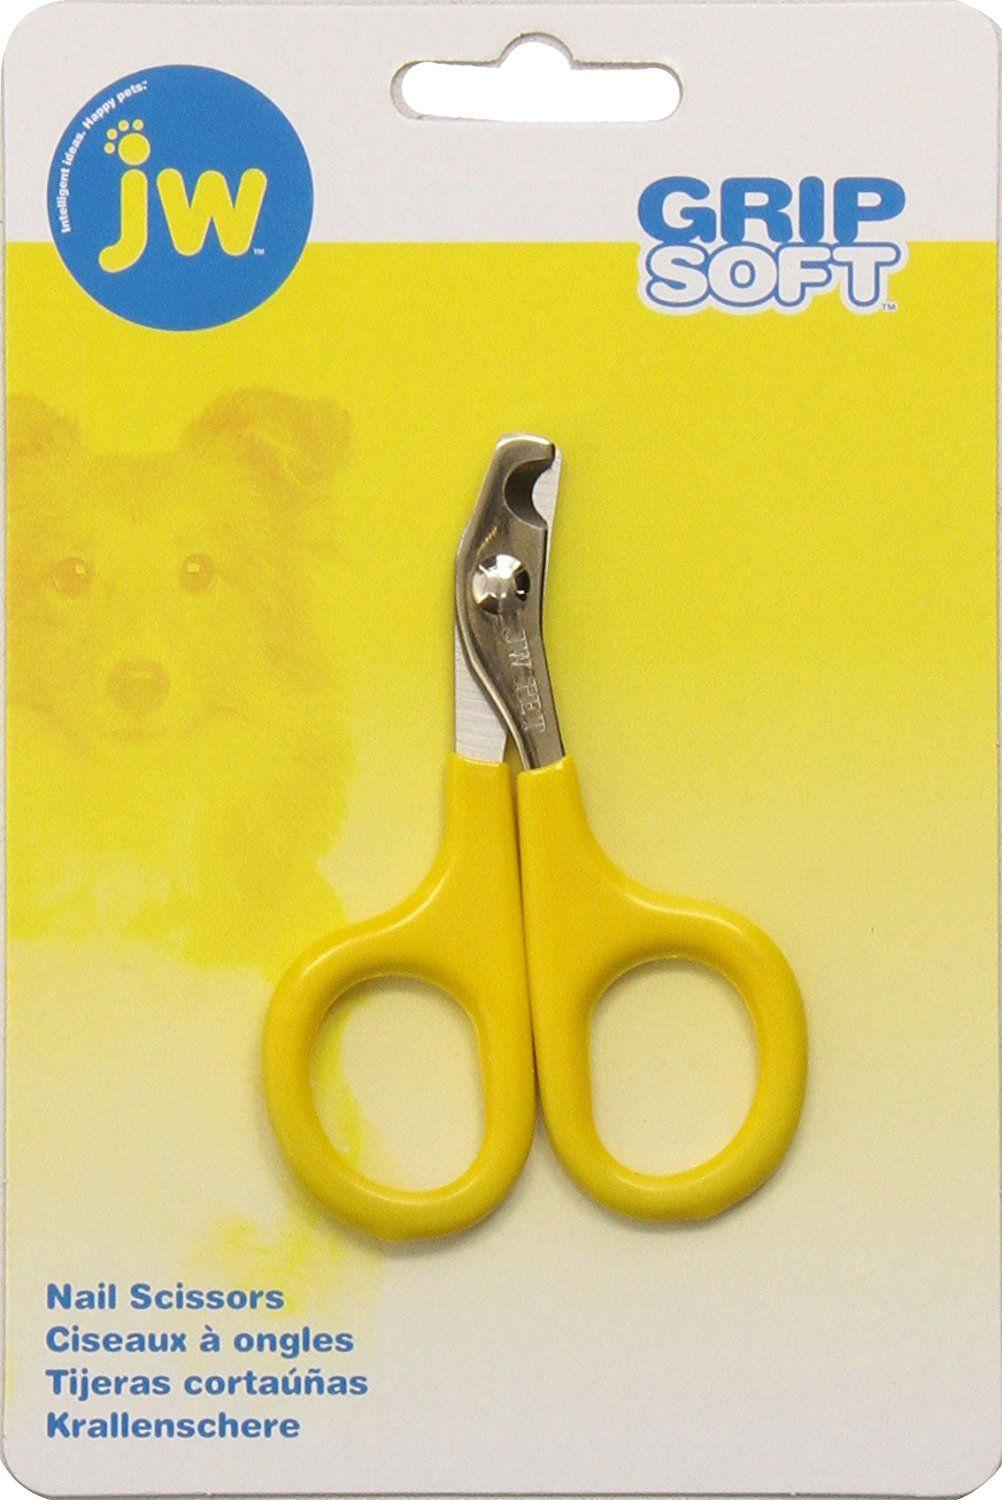 JW Pet Company GripSoft Nail Clipper for Pets, Small >>> Check out this great product.